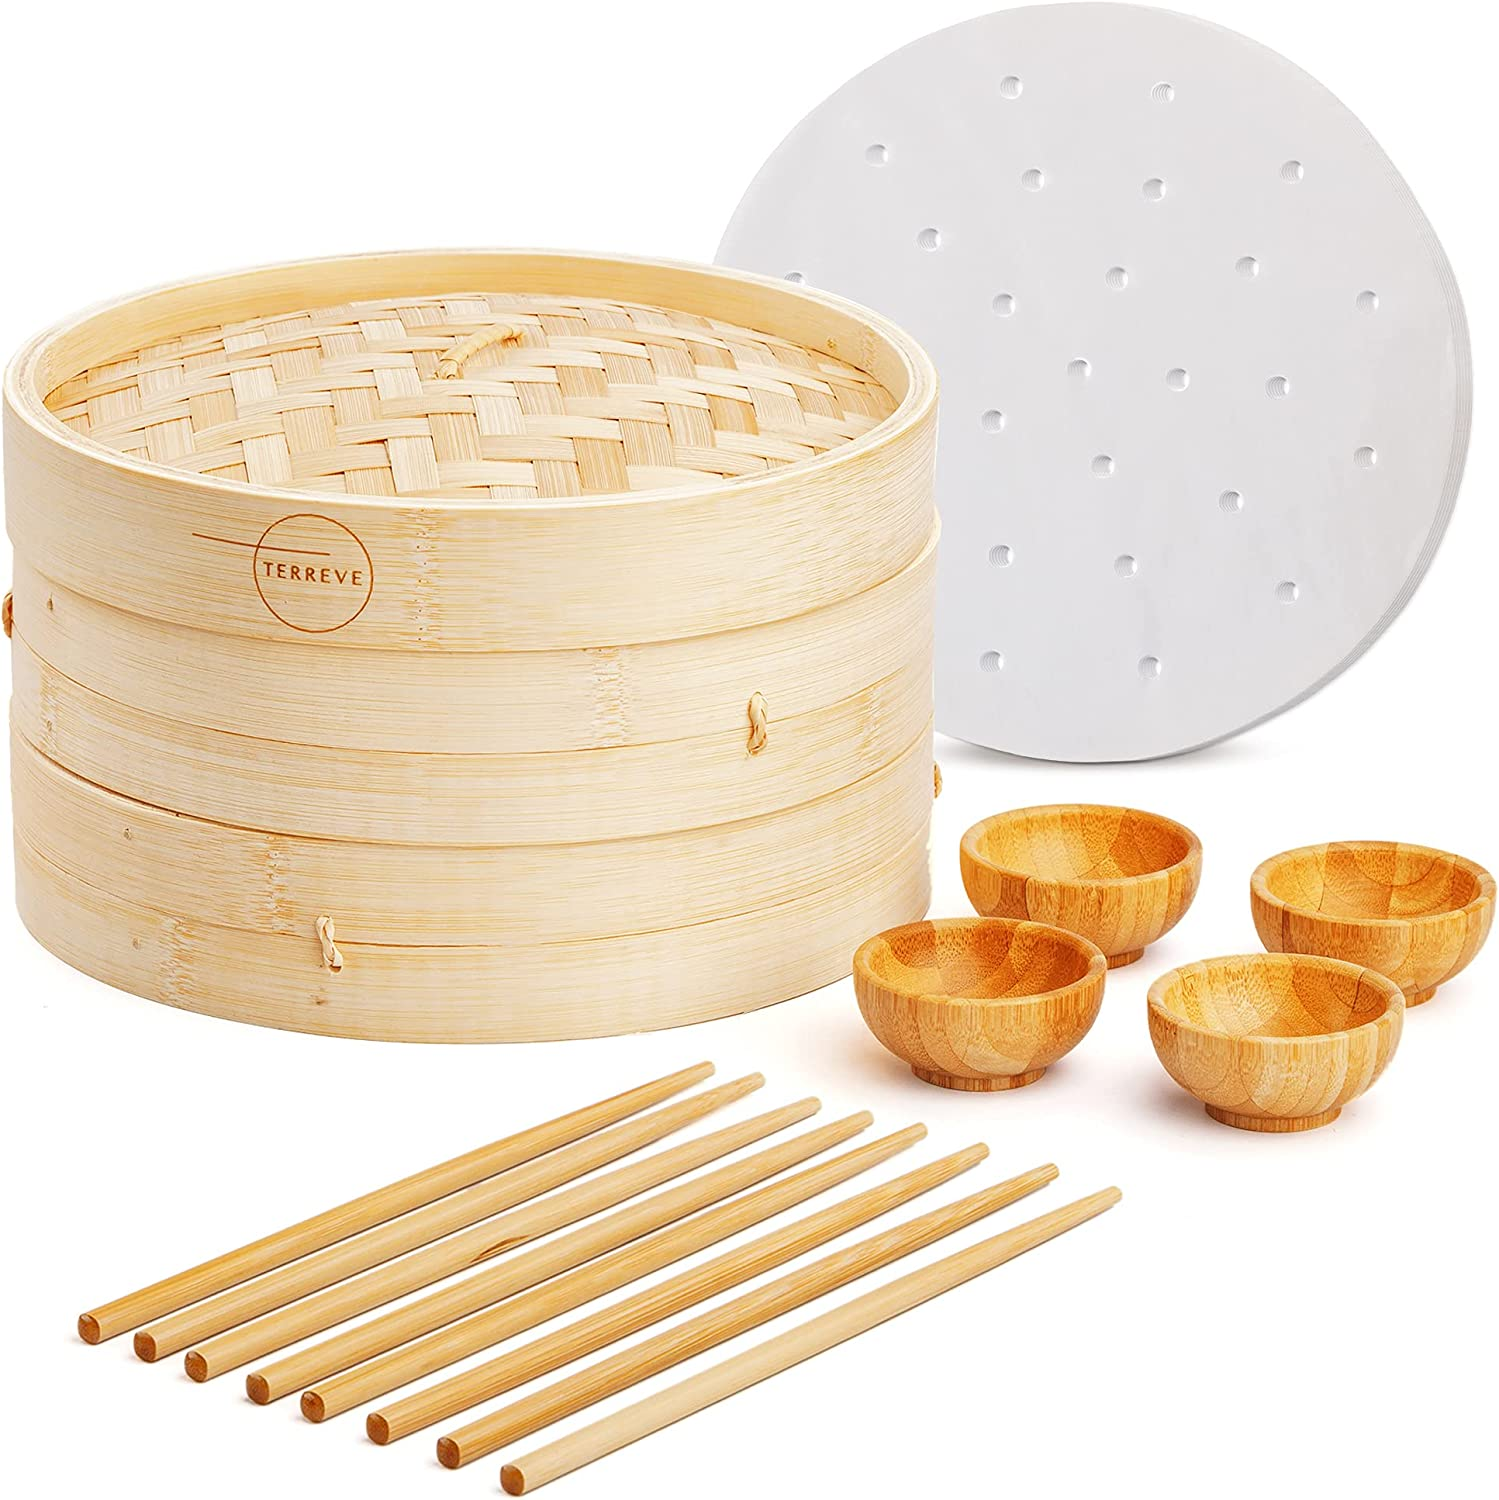 Bamboo Steamer Basket 10 Inch - 2 Tier Dumpling Steamer - Ideal For Cooking Asian Food, Dim Sum, Bao Bun, And More - Includes 4 Bamboo Bowls, 4 Pairs Of Chopsticks, And 50 Steamer Liners